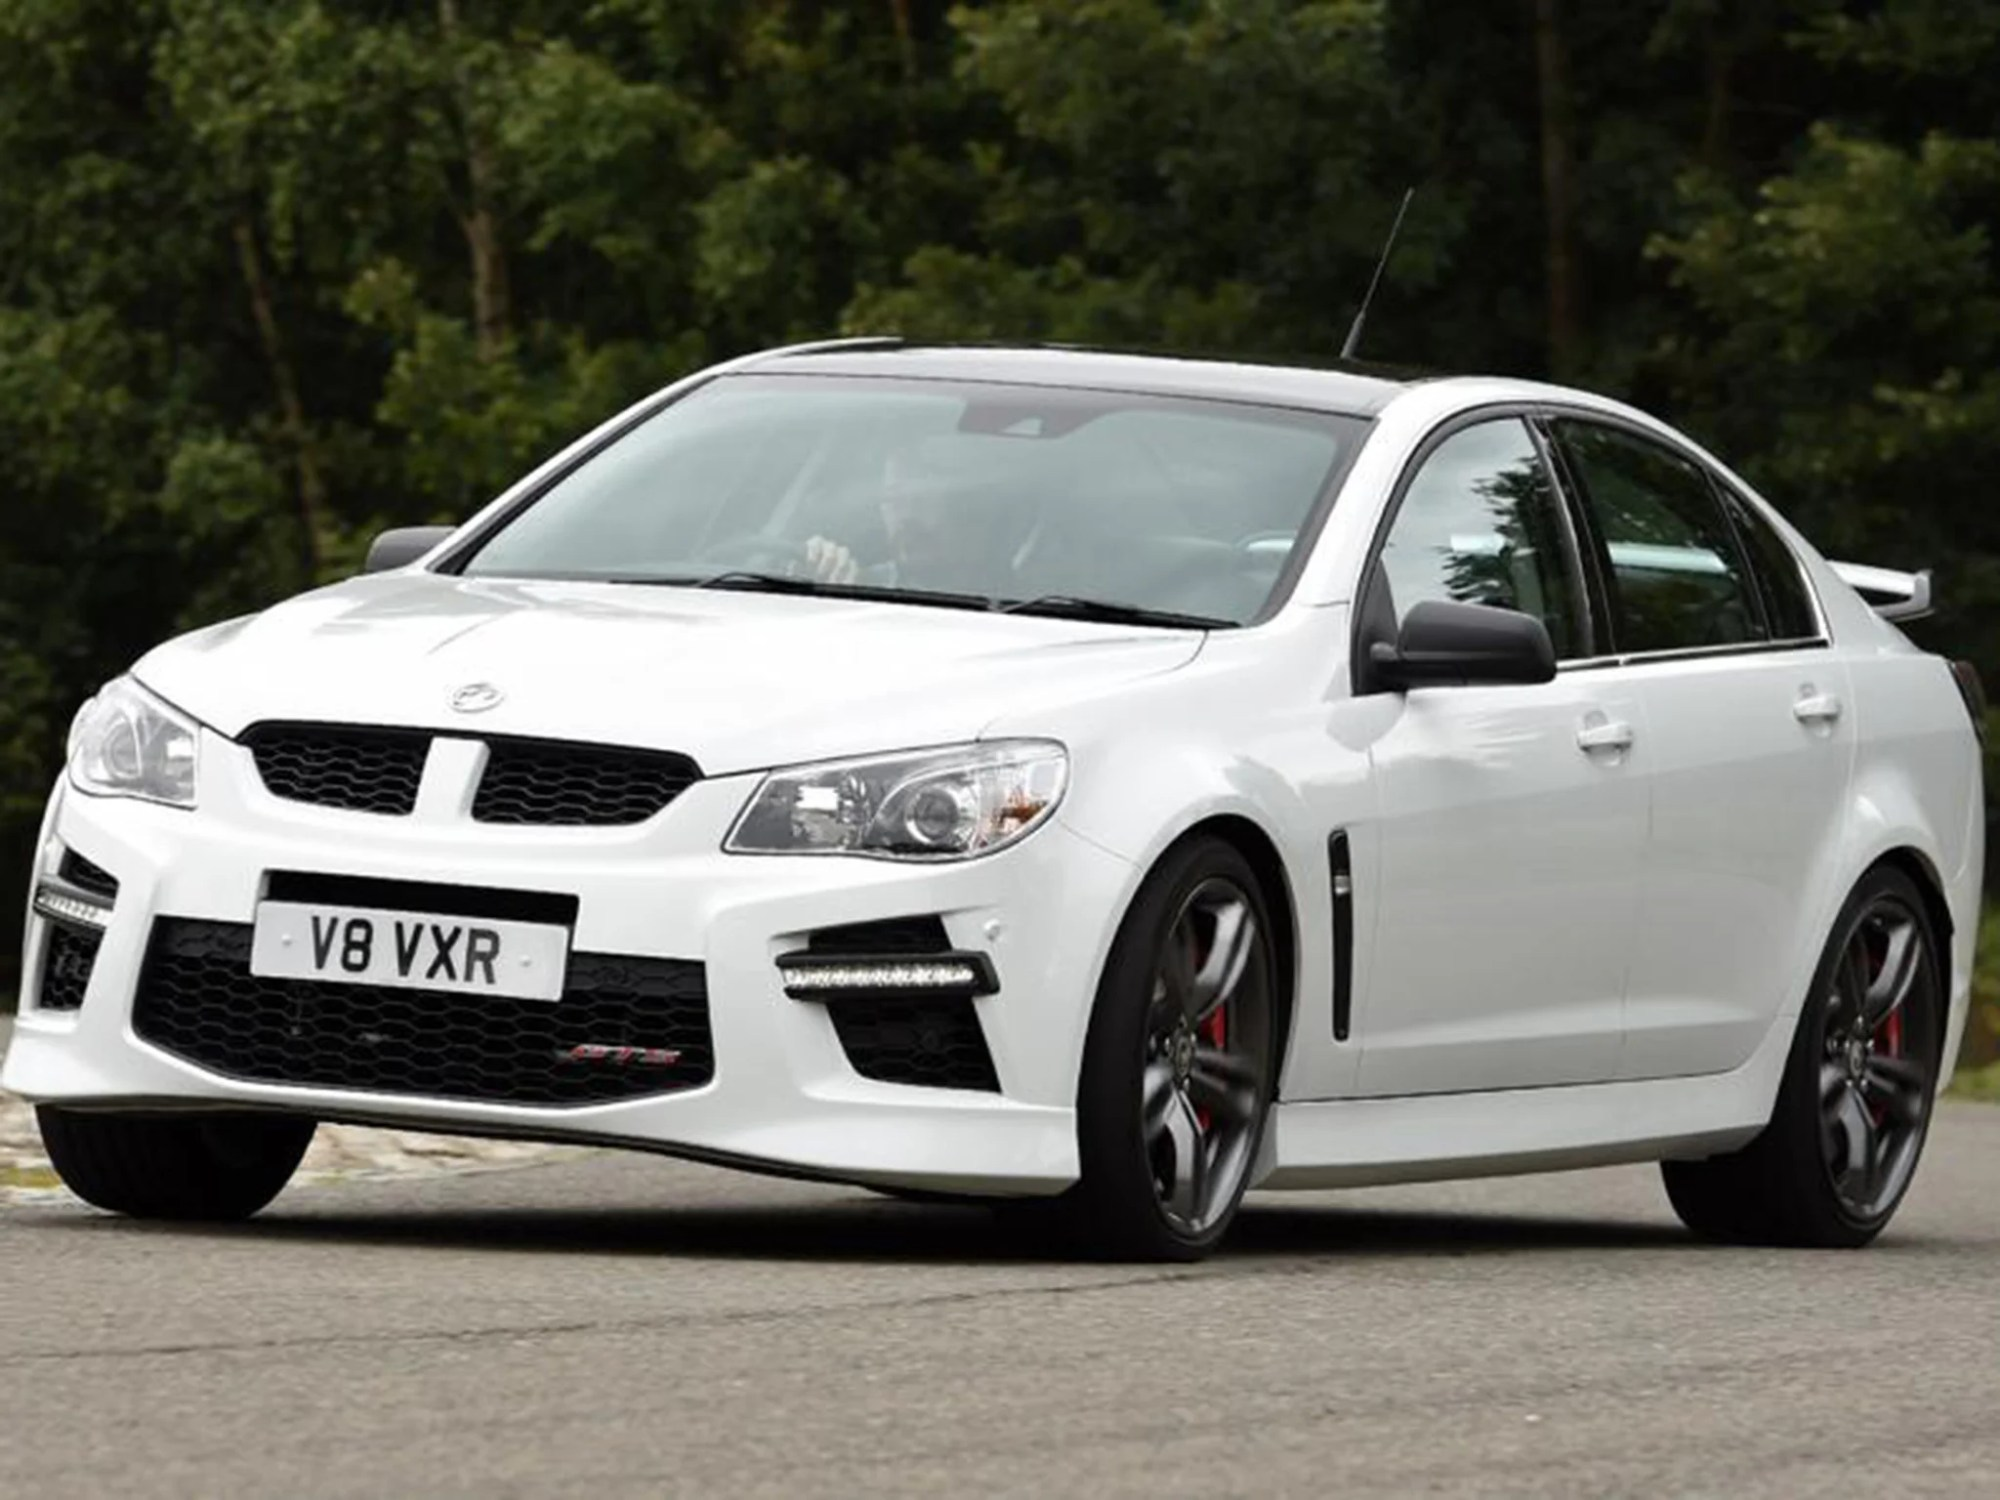 hight resolution of 2015 vauxhall vxr8 gts automatic motoring review paddle shifts for luton s blown bruiser